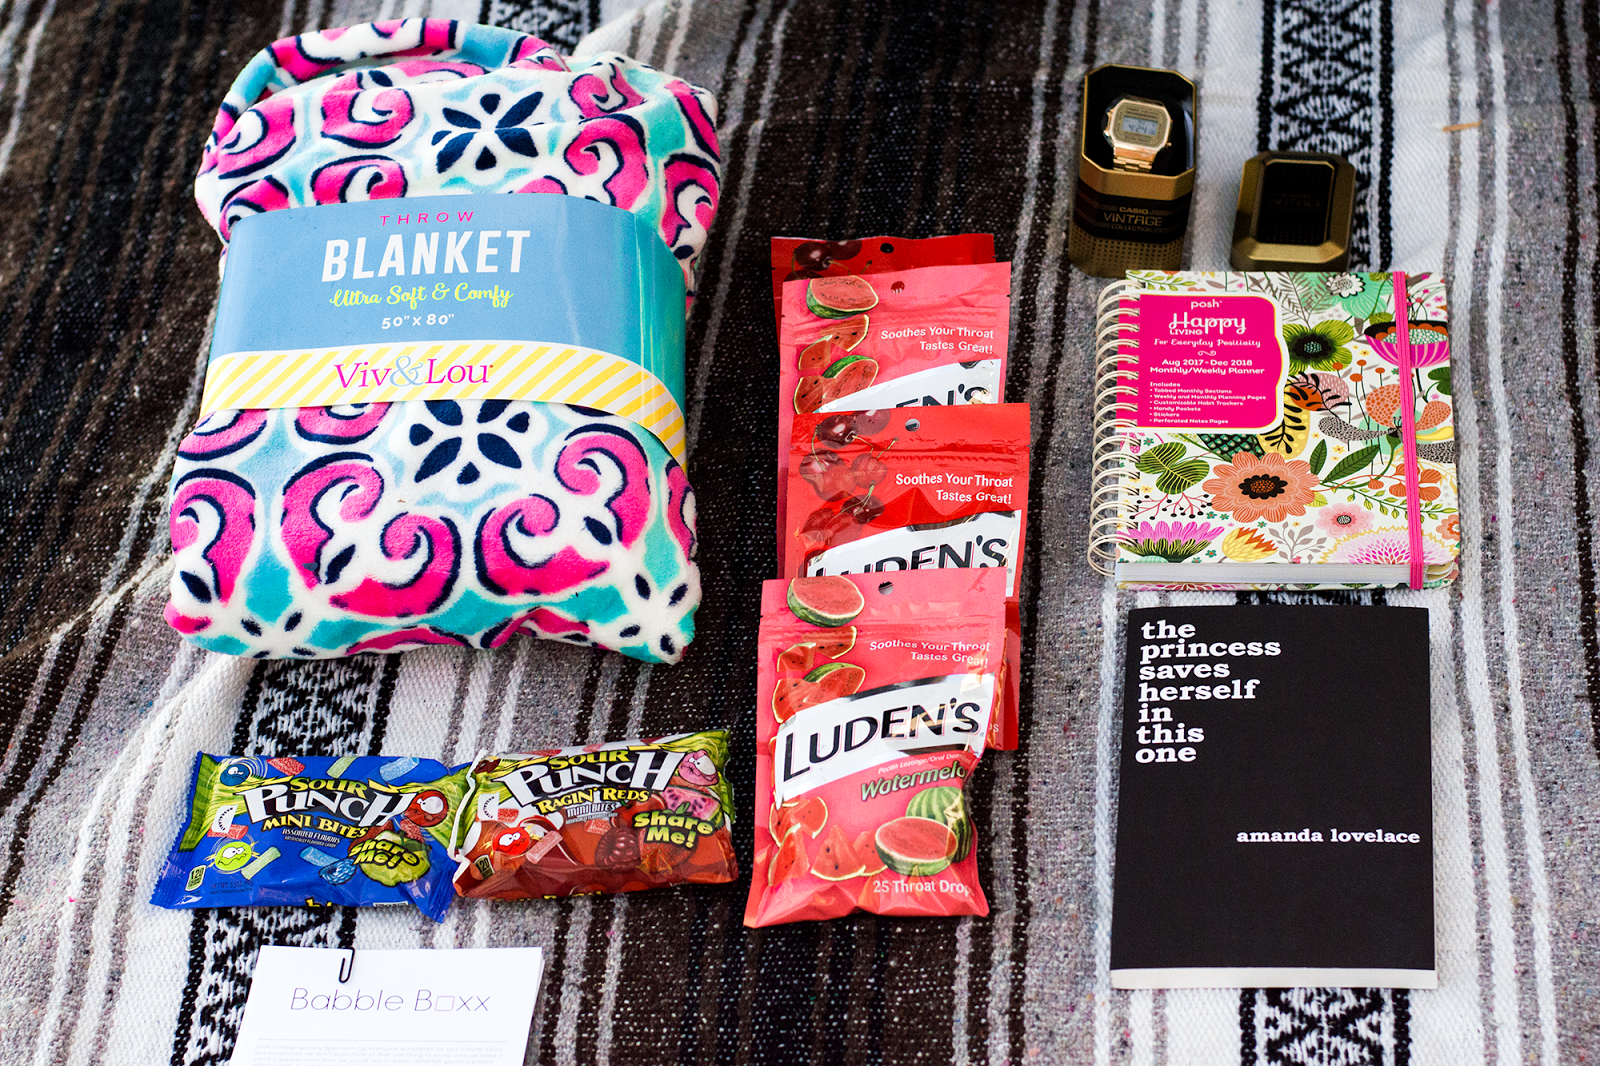 Viv and Lou Throw Blanket, EZneeds,Casio Vintage Watch, the princess saves herself in this one, Sour,  Punch Share Me! Mini Bites, Posh: Happy Living 2017-2018 Monthly/Weekly Planner Calendar, Luden's Throat Drops,